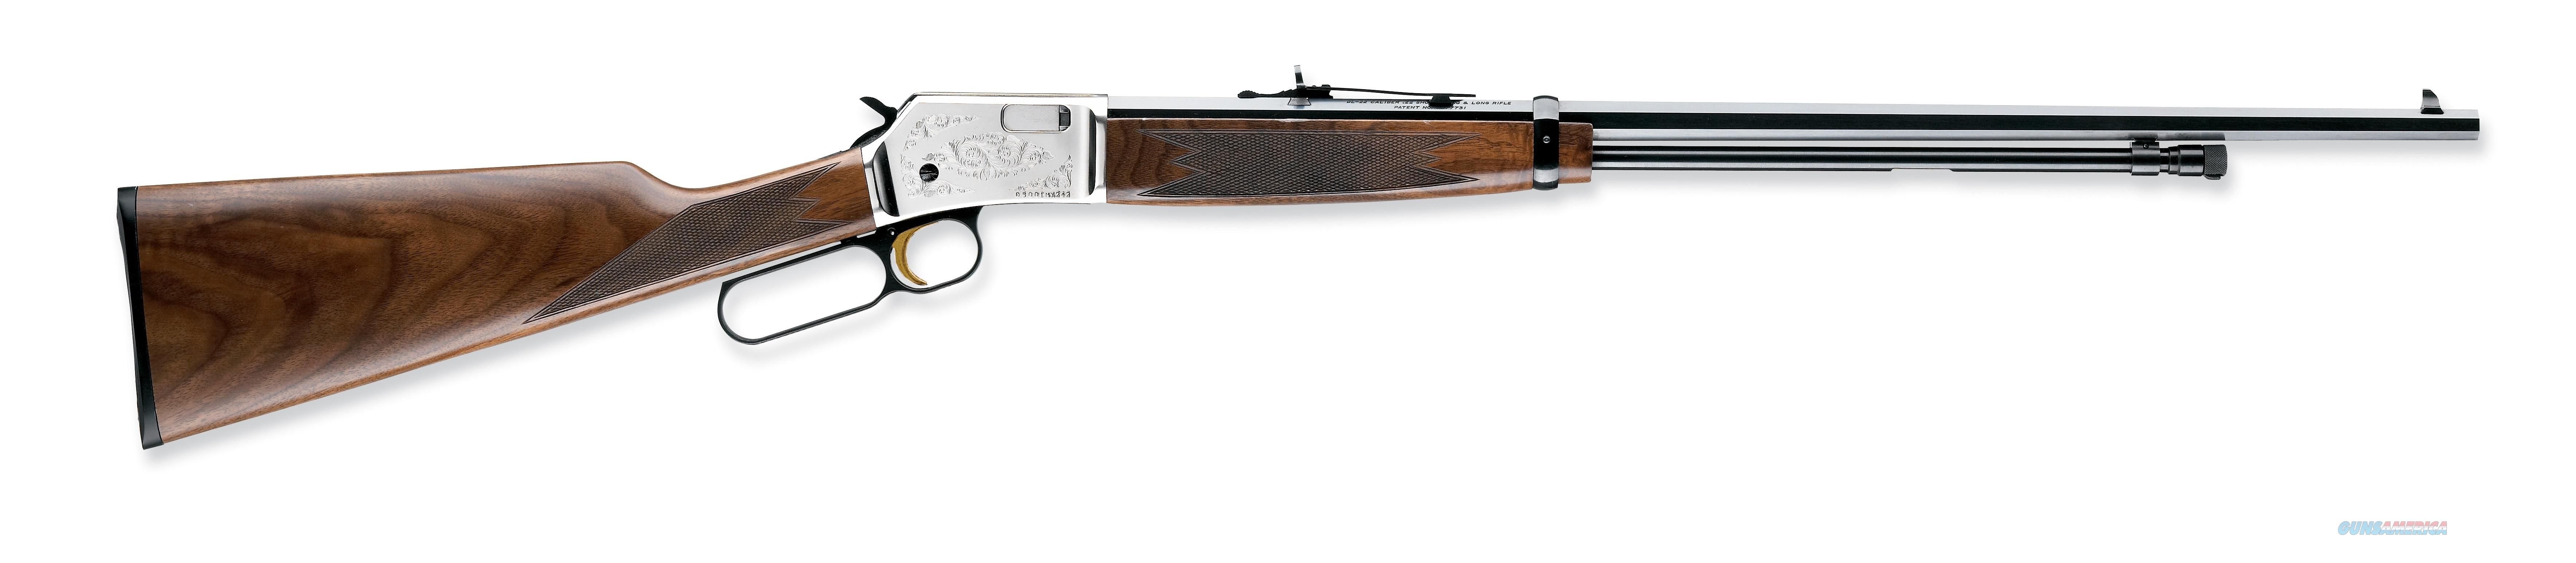 "Browning BL-22 FLD .22 S/L/LR Nickel 24"" Octagon 024105155  Guns > Rifles > Browning Rifles > Lever Action"